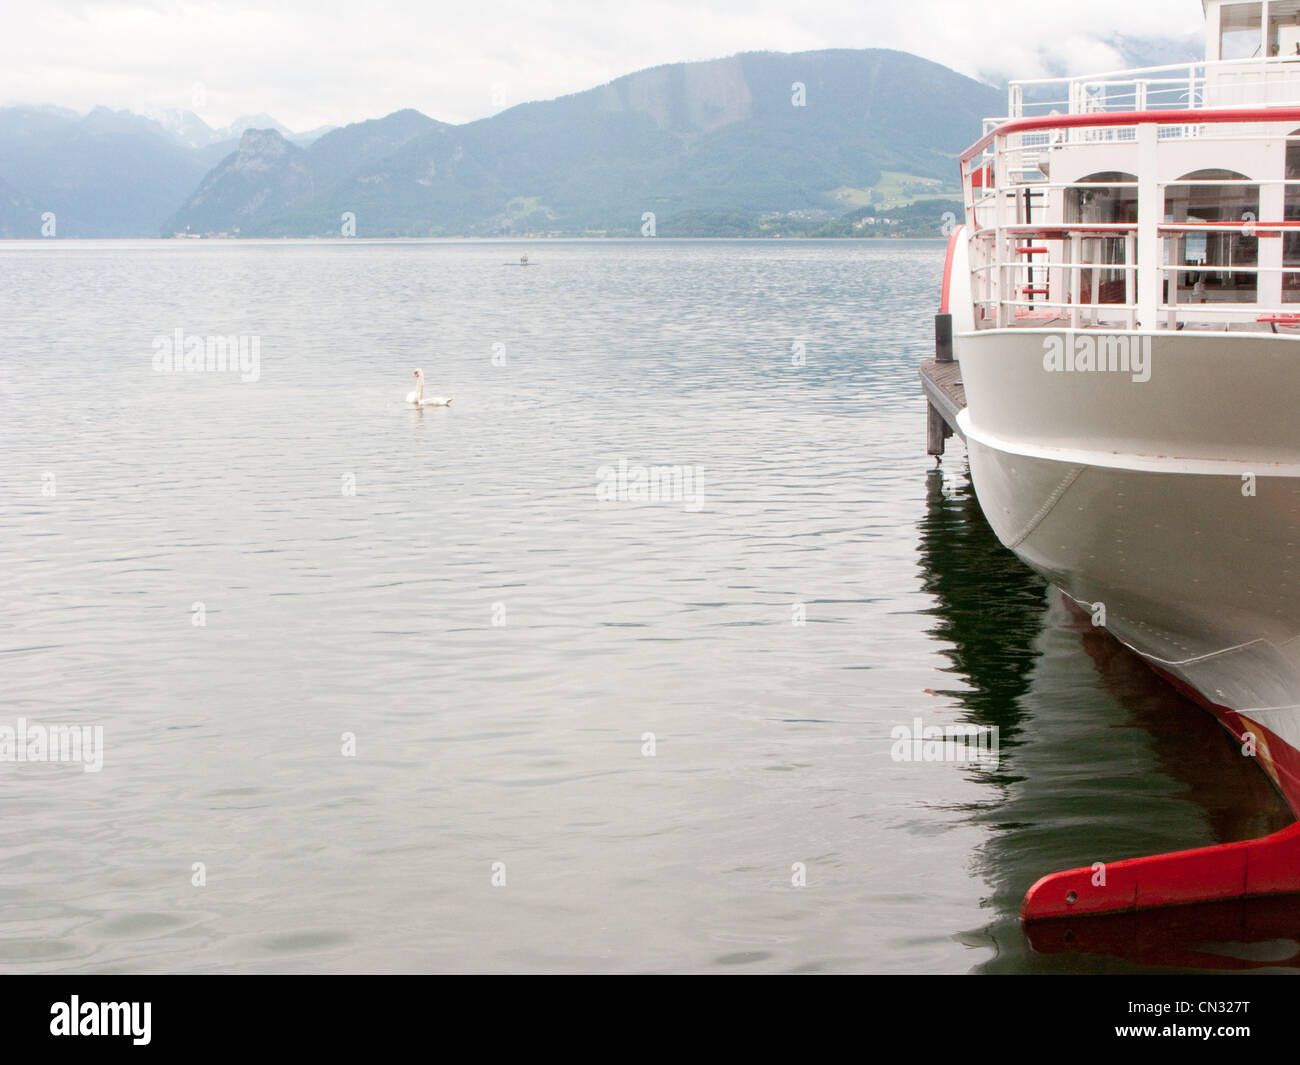 Ferry on water - Stock Image